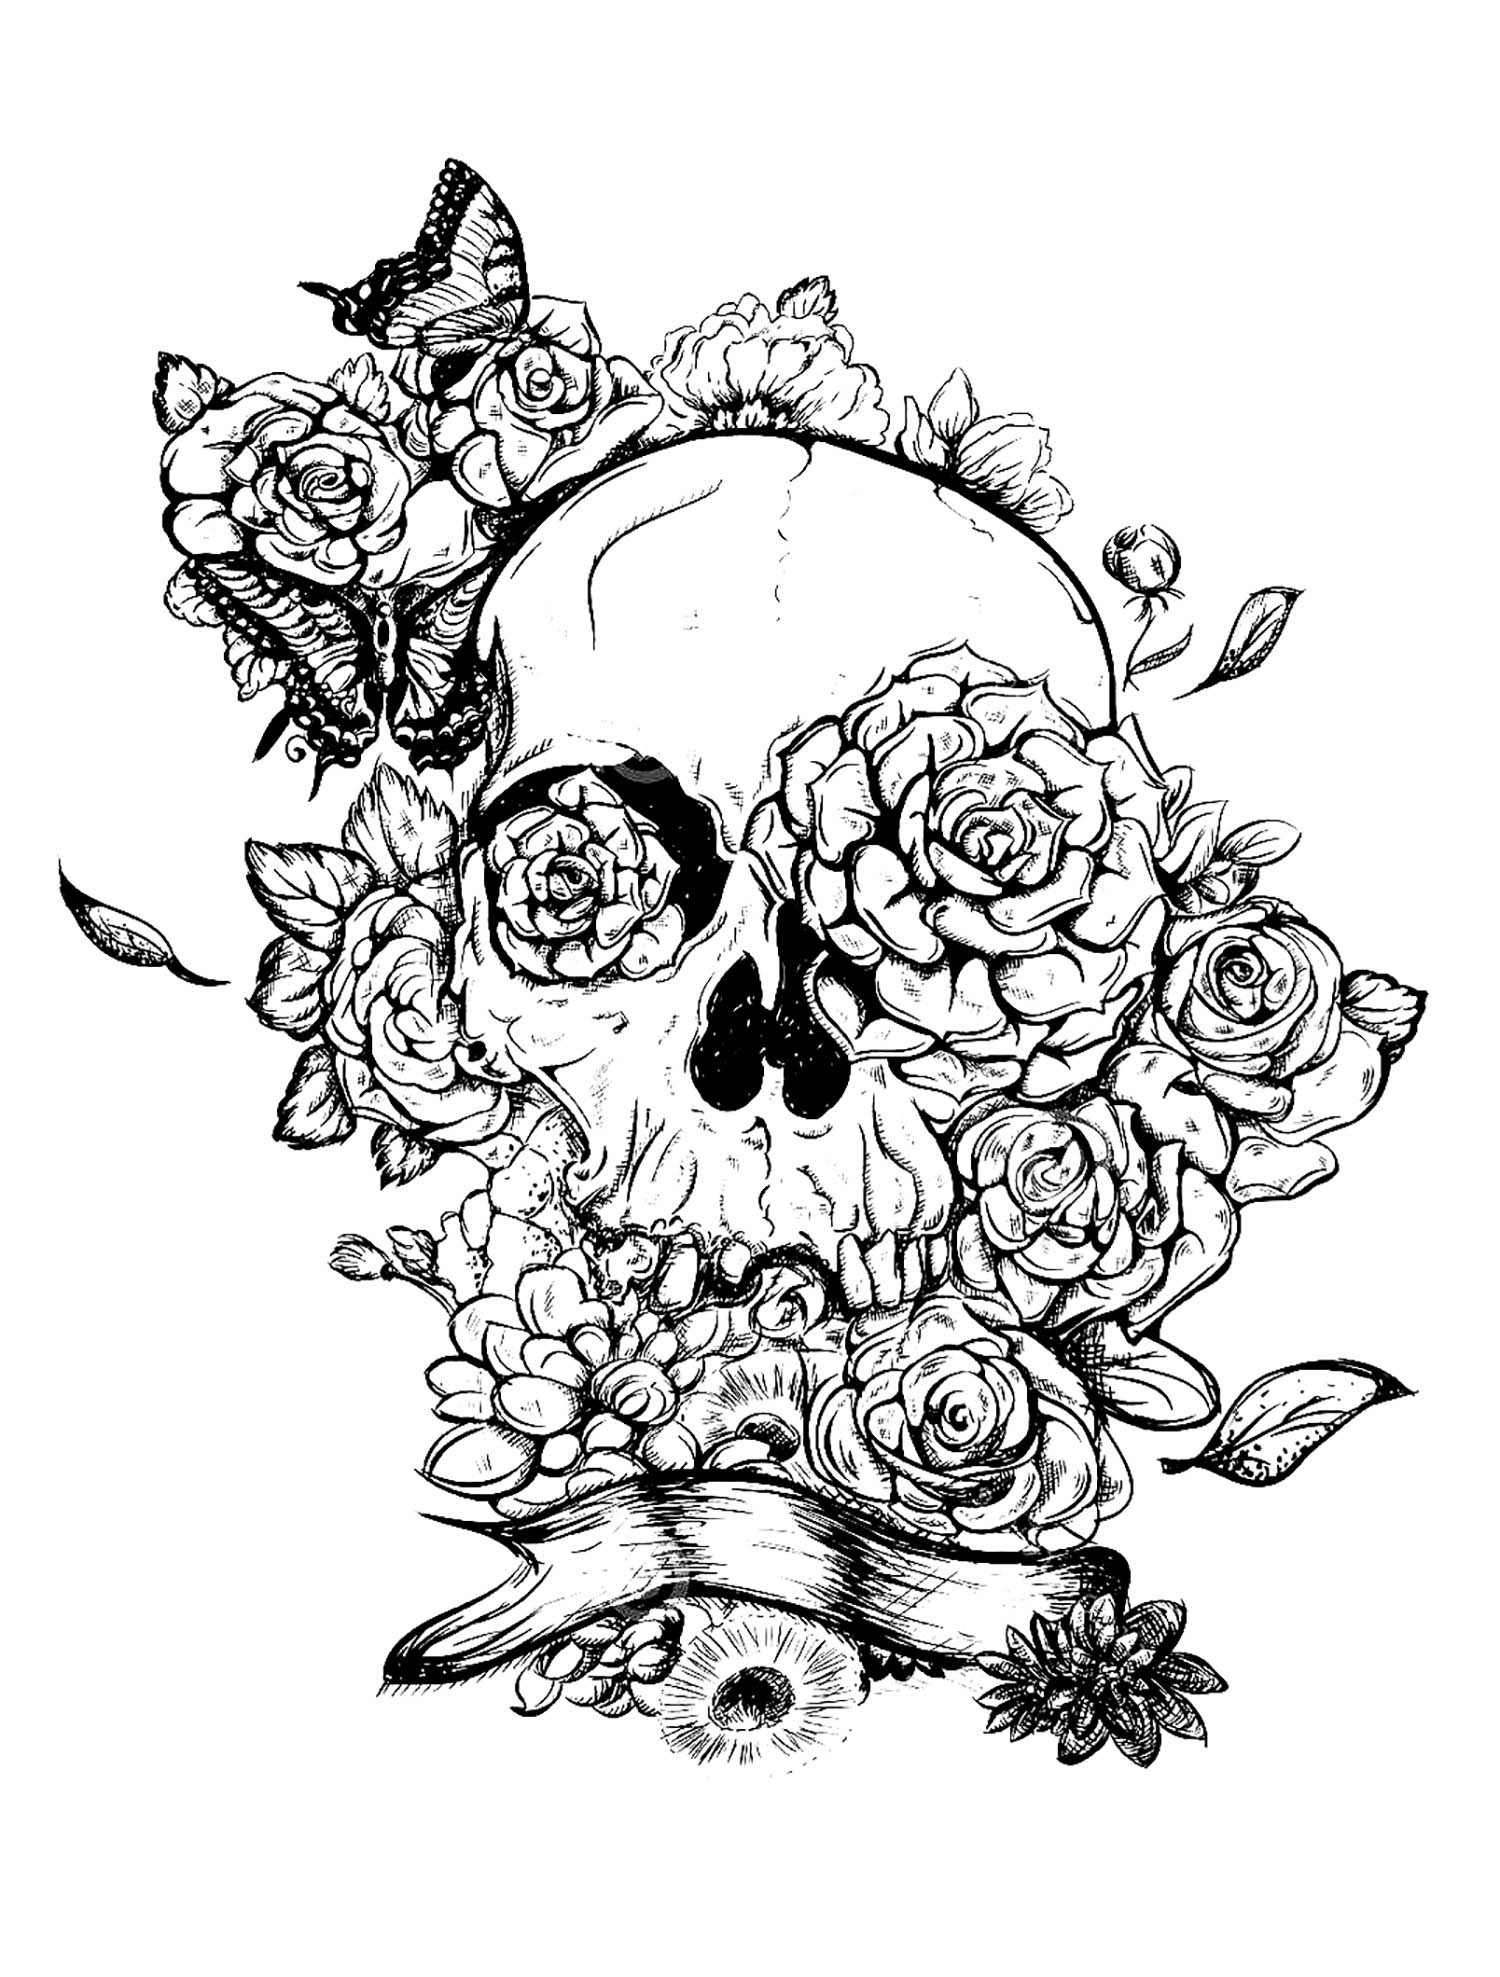 tattoos - coloring pages for adults - Coloring Pages Roses Skulls